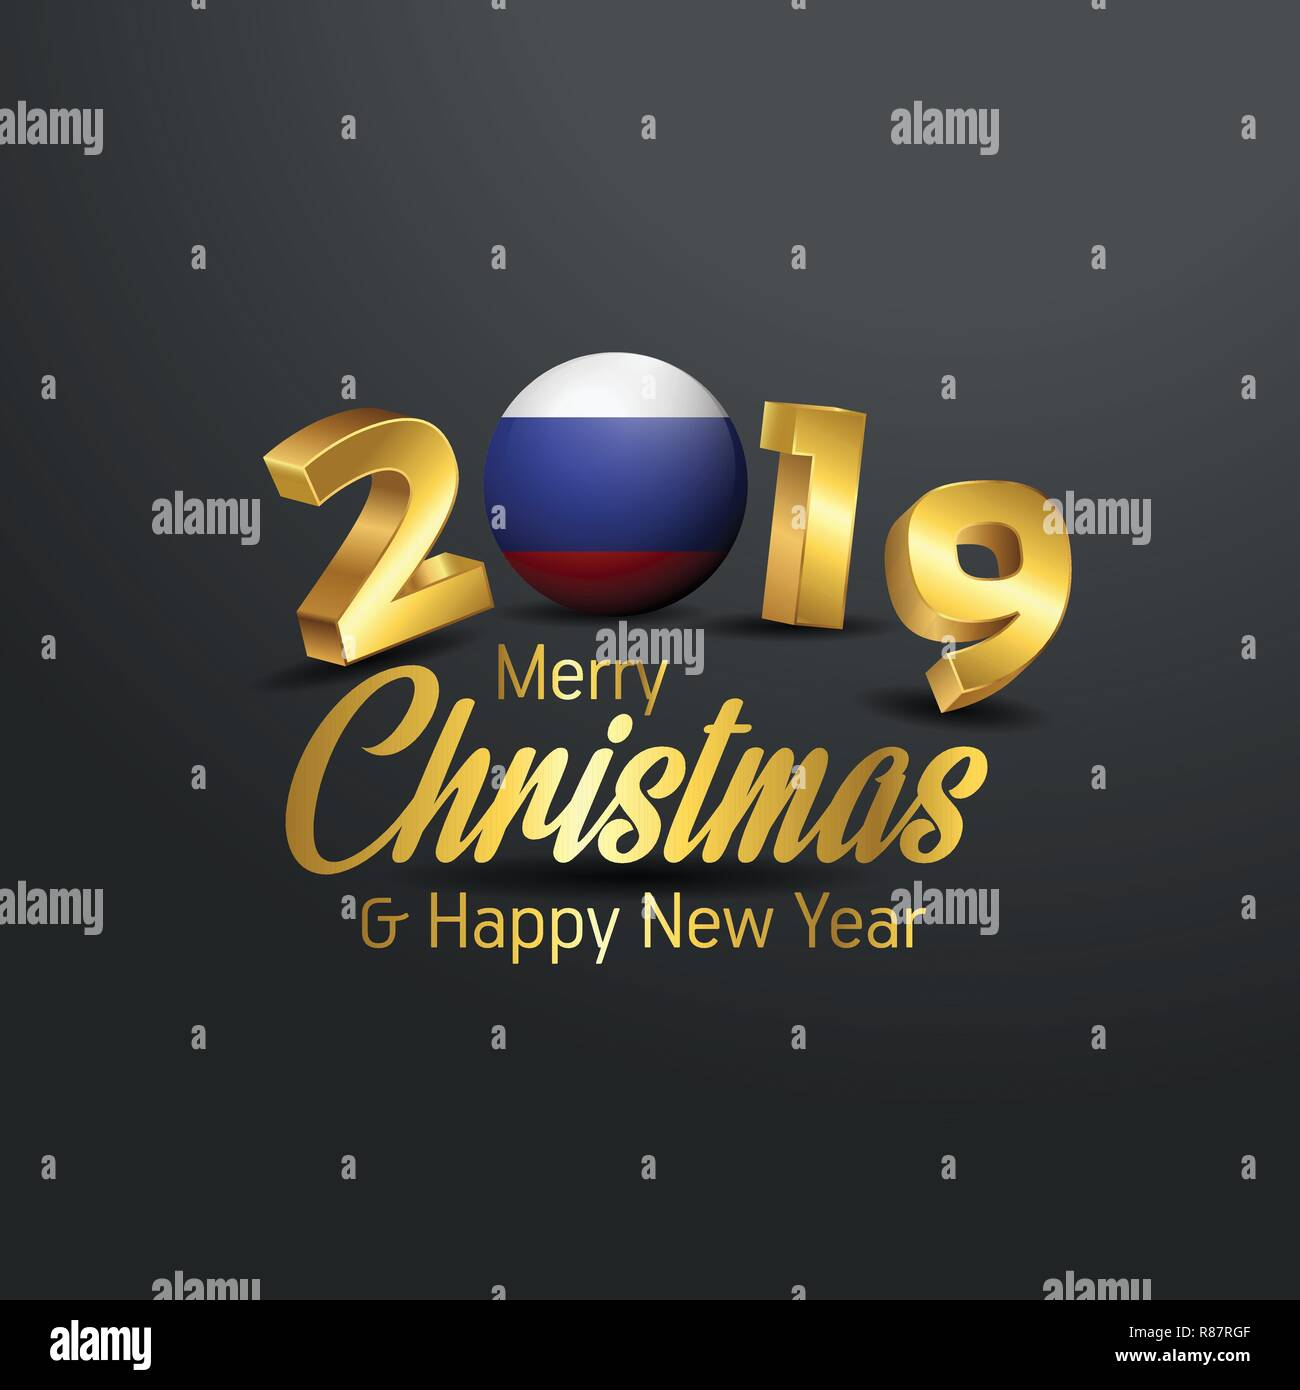 Russian Christmas 2019 Russia Flag 2019 Merry Christmas Typography. New Year Abstract